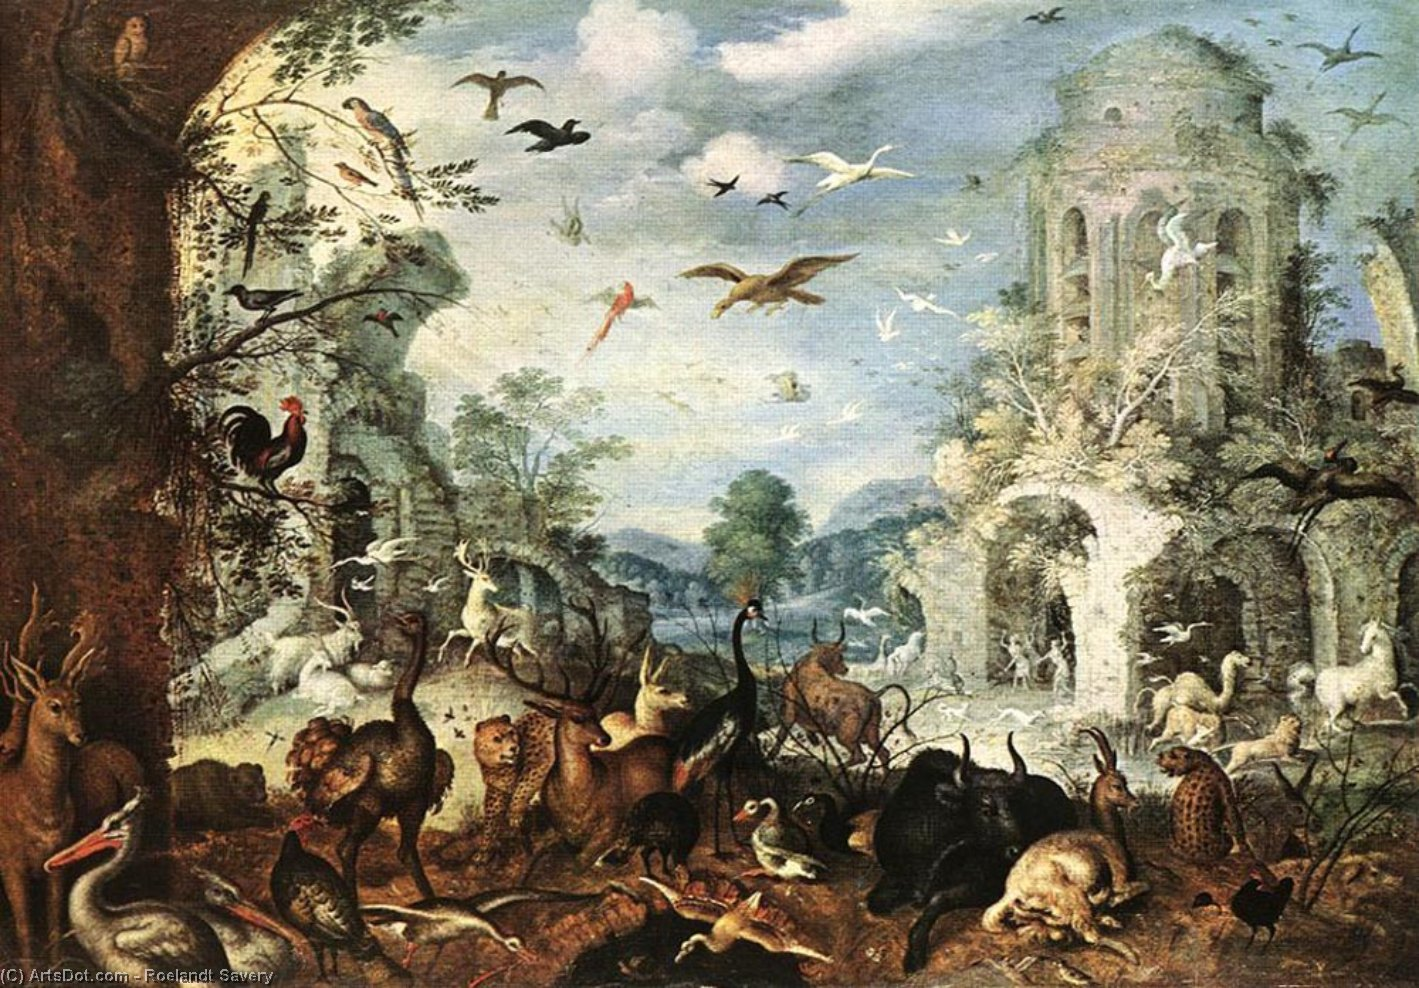 Wikioo.org - The Encyclopedia of Fine Arts - Painting, Artwork by Roelandt Savery - Landscape with Wild Beasts